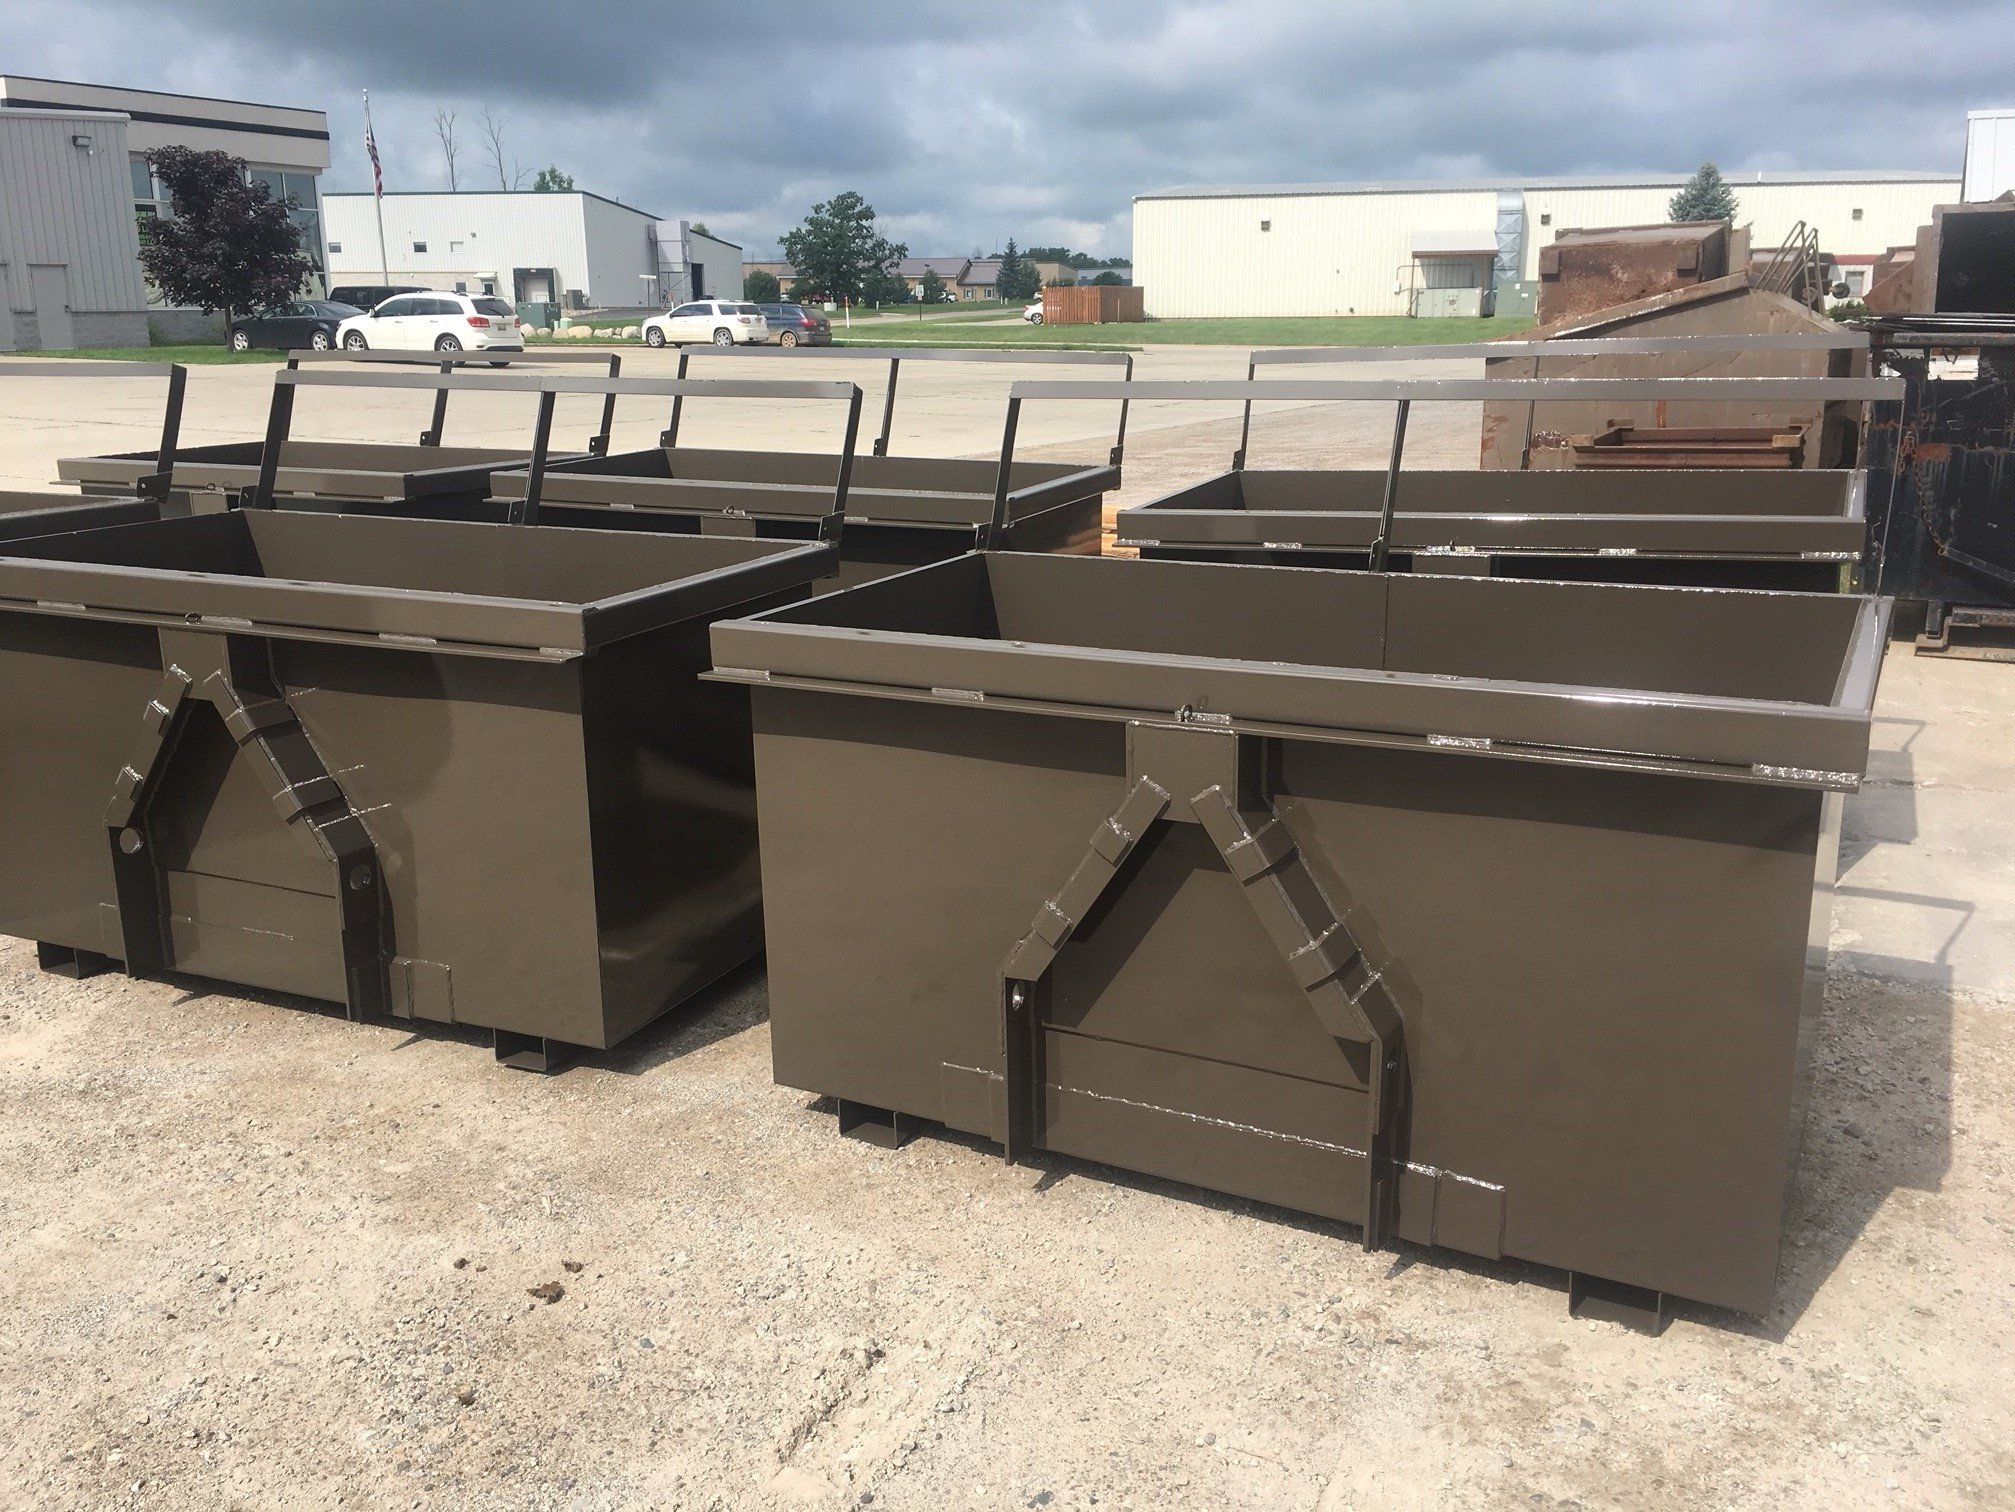 https://0201.nccdn.net/1_2/000/000/104/ac9/2YD-Front-Load-Waste-Containers-2015x1512.jpg